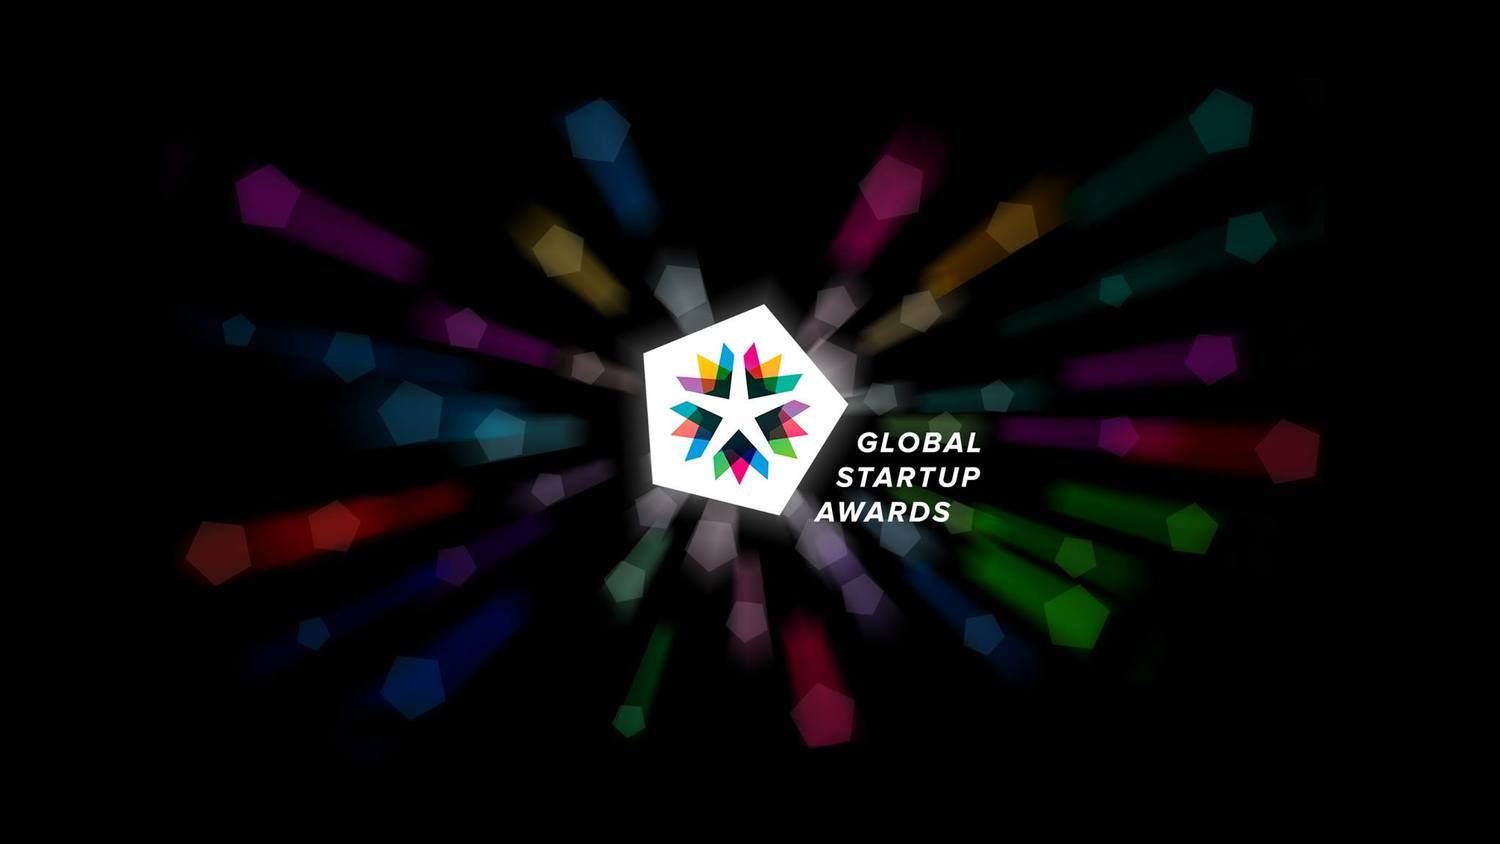 About — Global Startup Awards